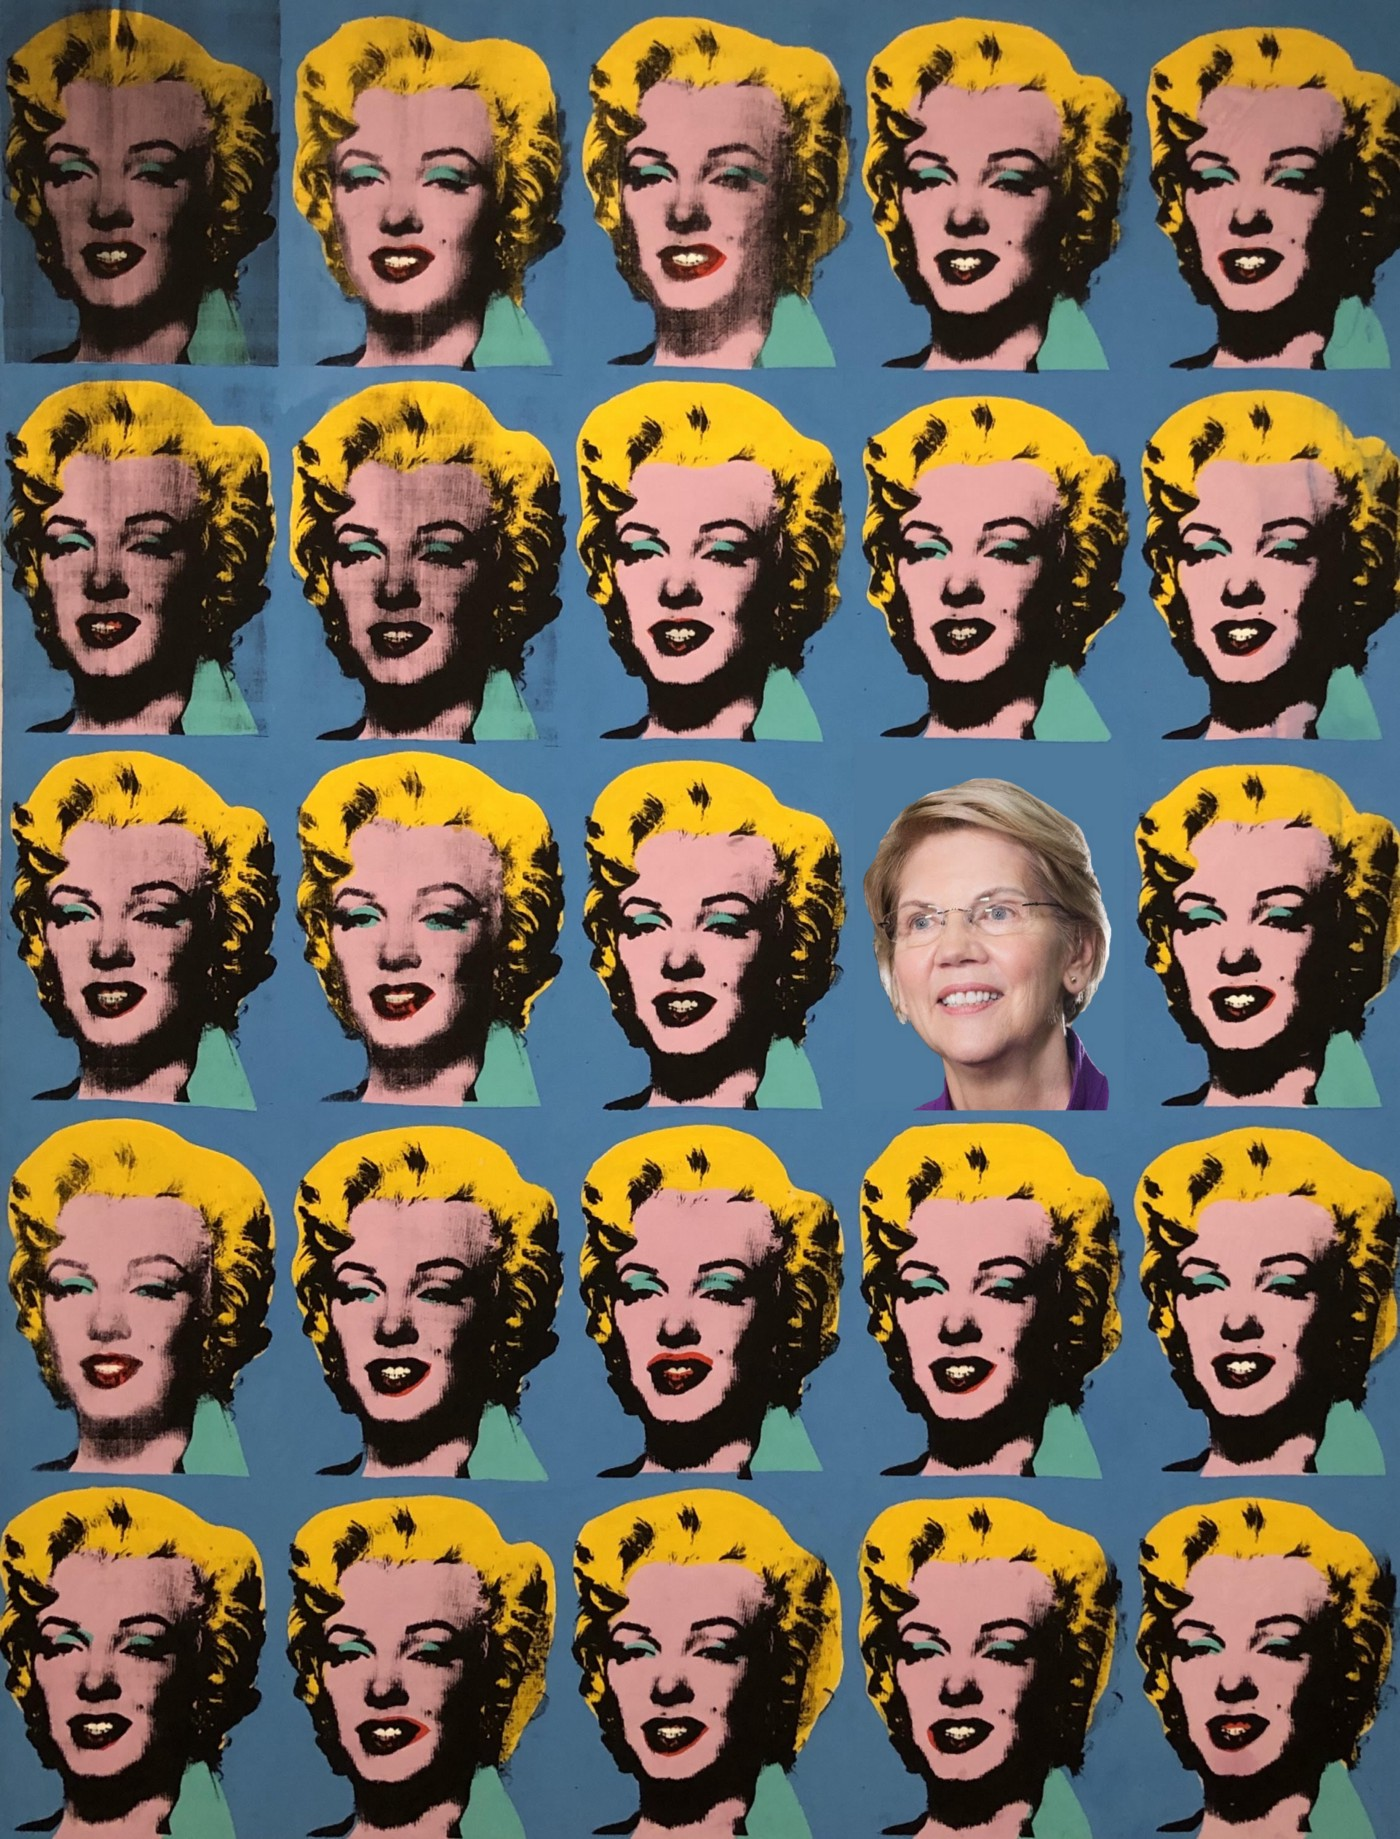 paintaing: Andy Warhol, Twenty-Five Colored Marilyns